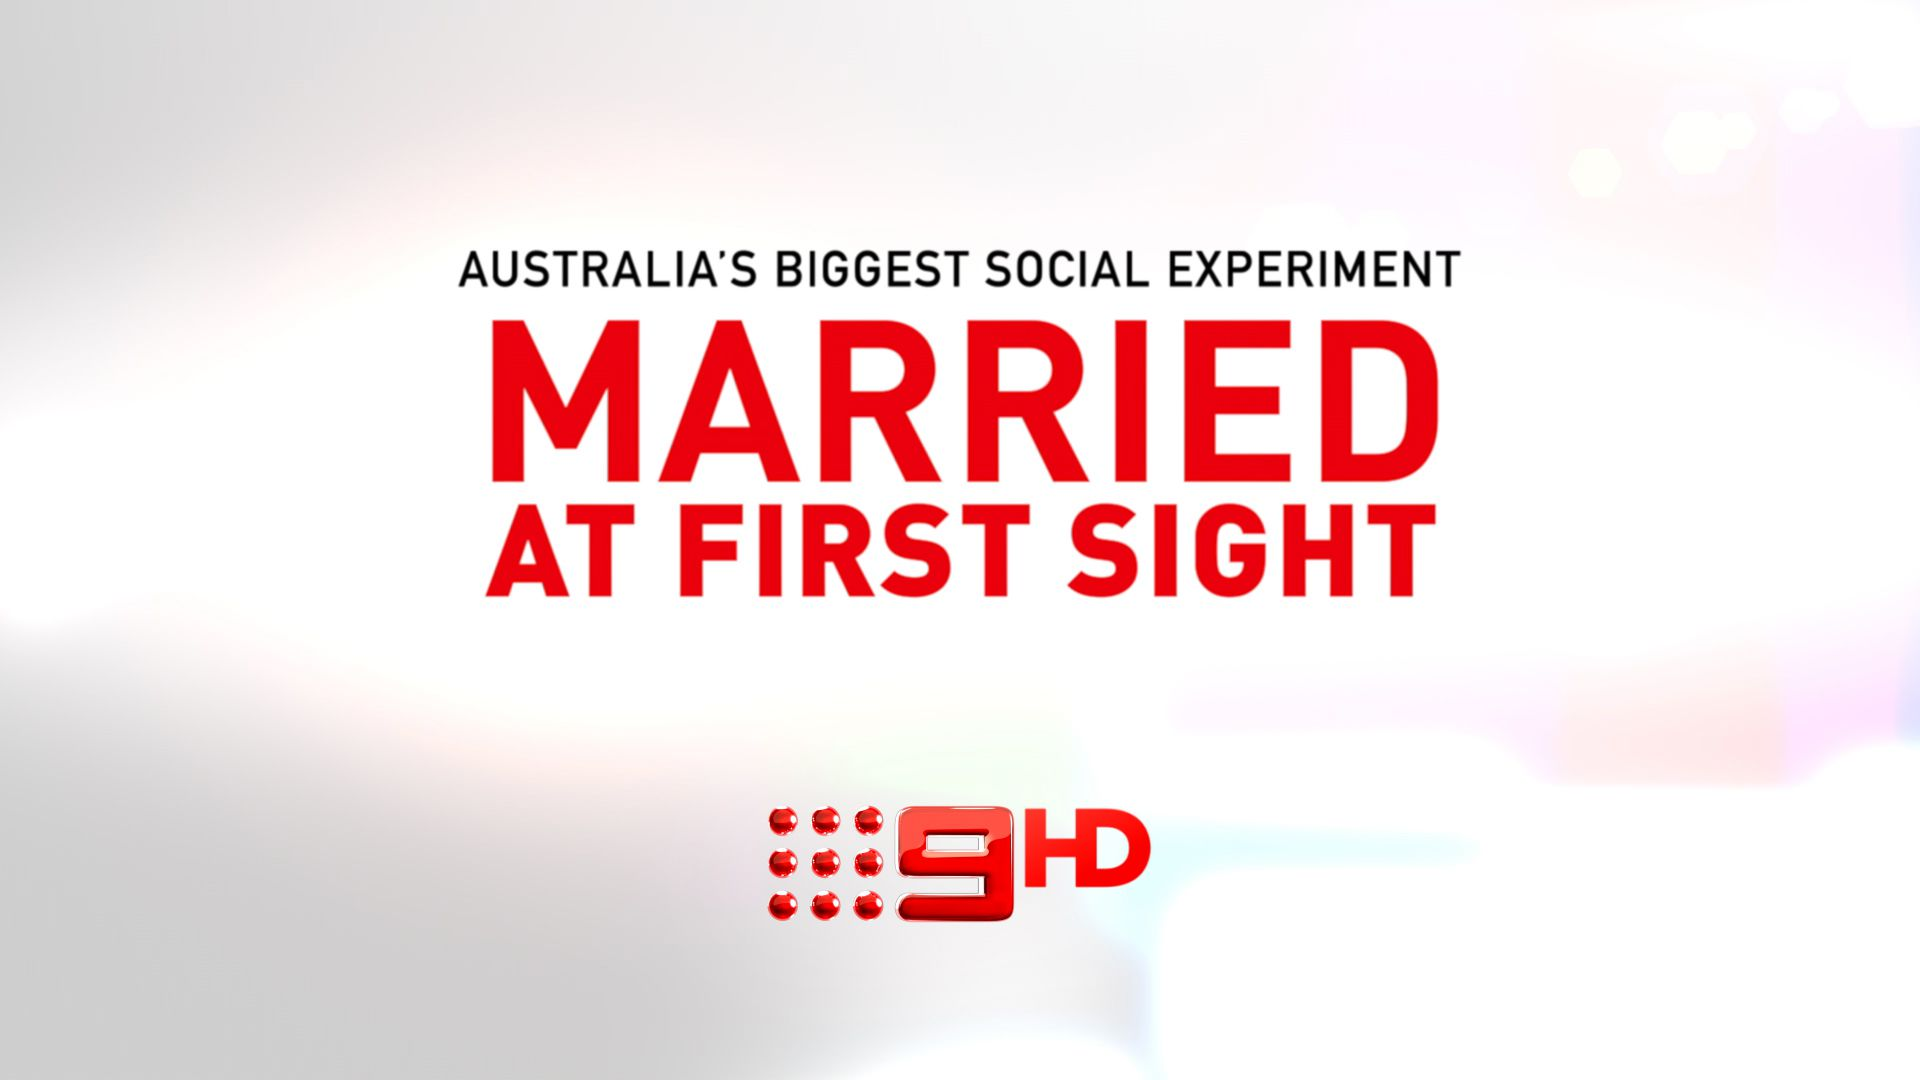 Married at First Sight - Nine - Where Australia Connects